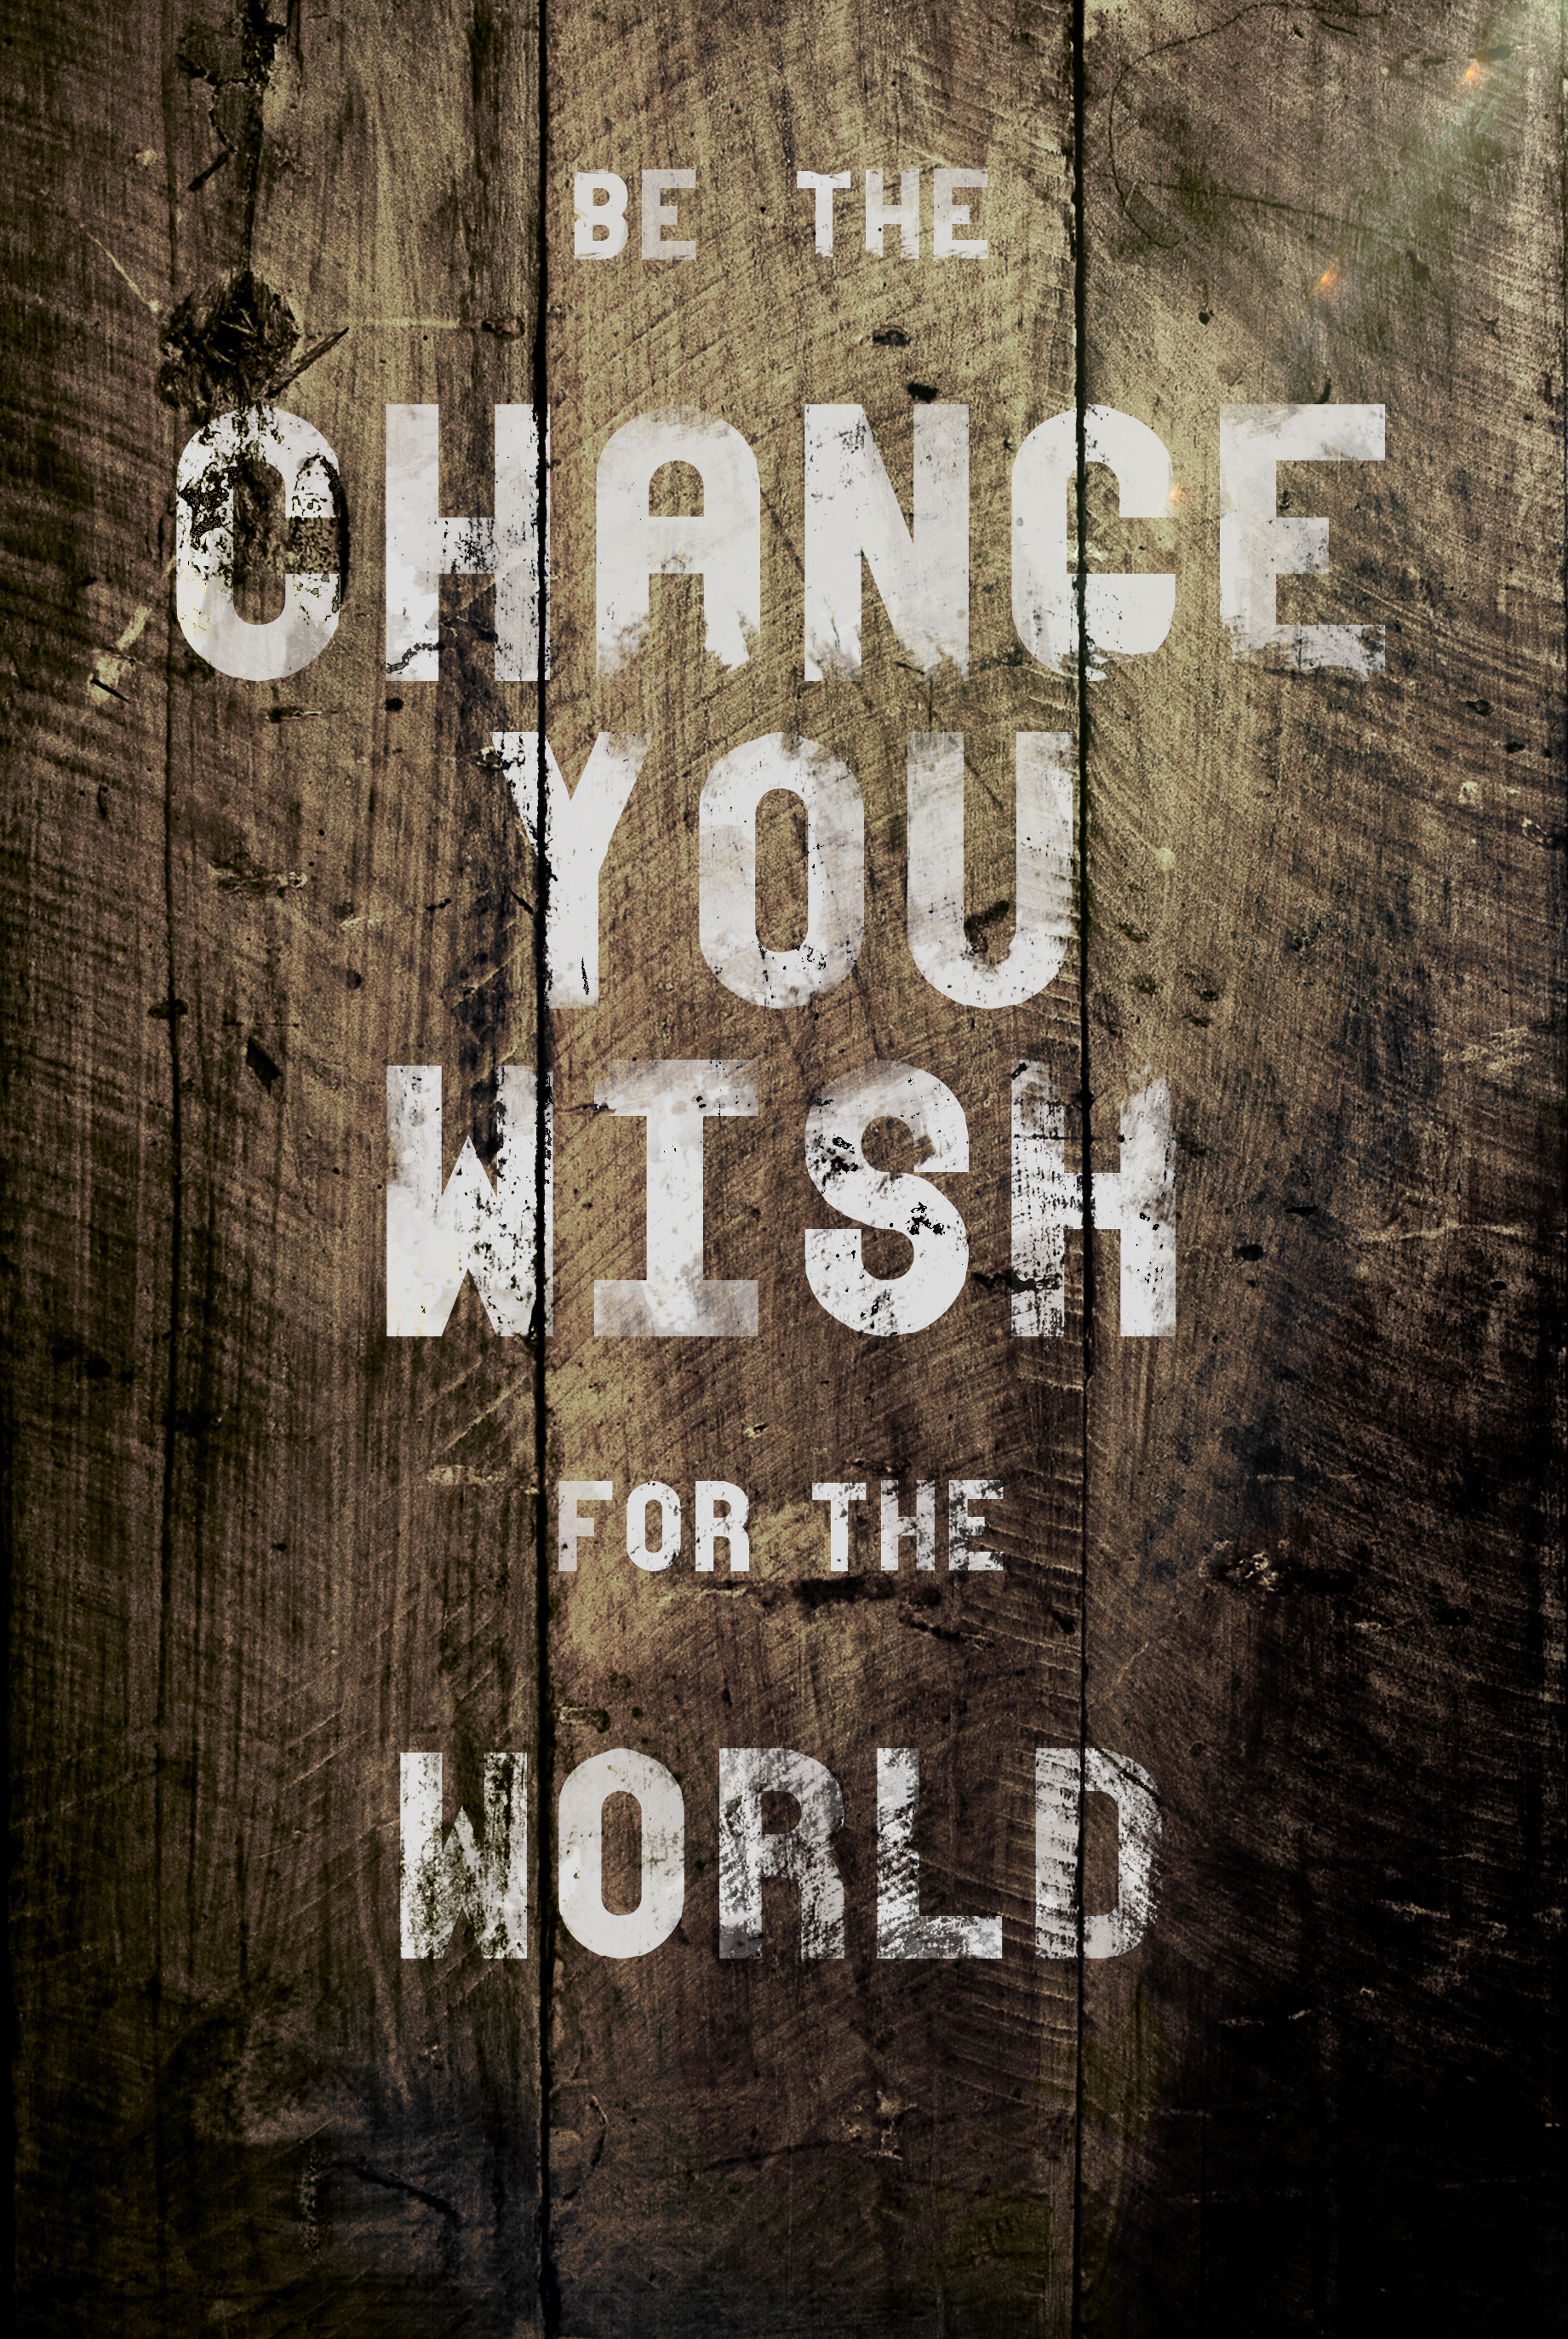 Be The Change You Wish For The World by JuicyLung